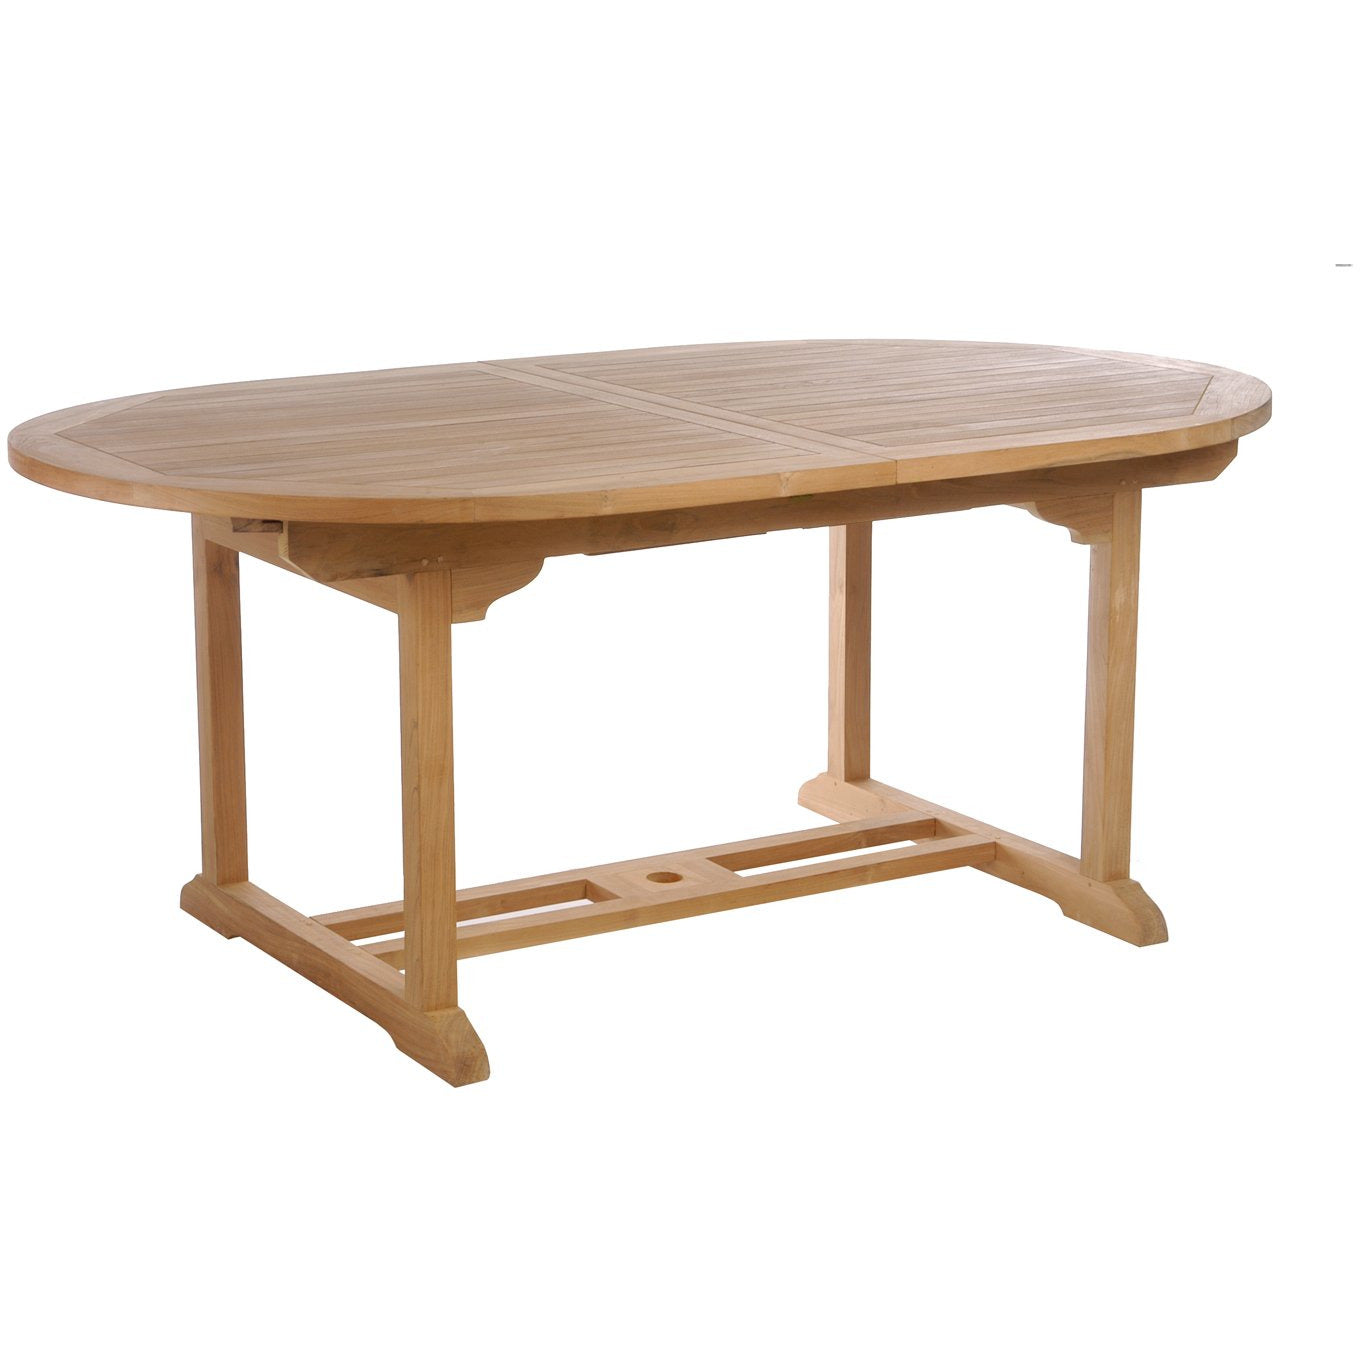 Shop Teak Patio Dining Tables (Round, Oval and Rectangular) by Chic Teak:  Extension Table, Folding Table, Oval, Rectangular, Round, Semi Oval, Square - Shop Teak Patio Dining Tables (Round, Oval And Rectangular) By Chic